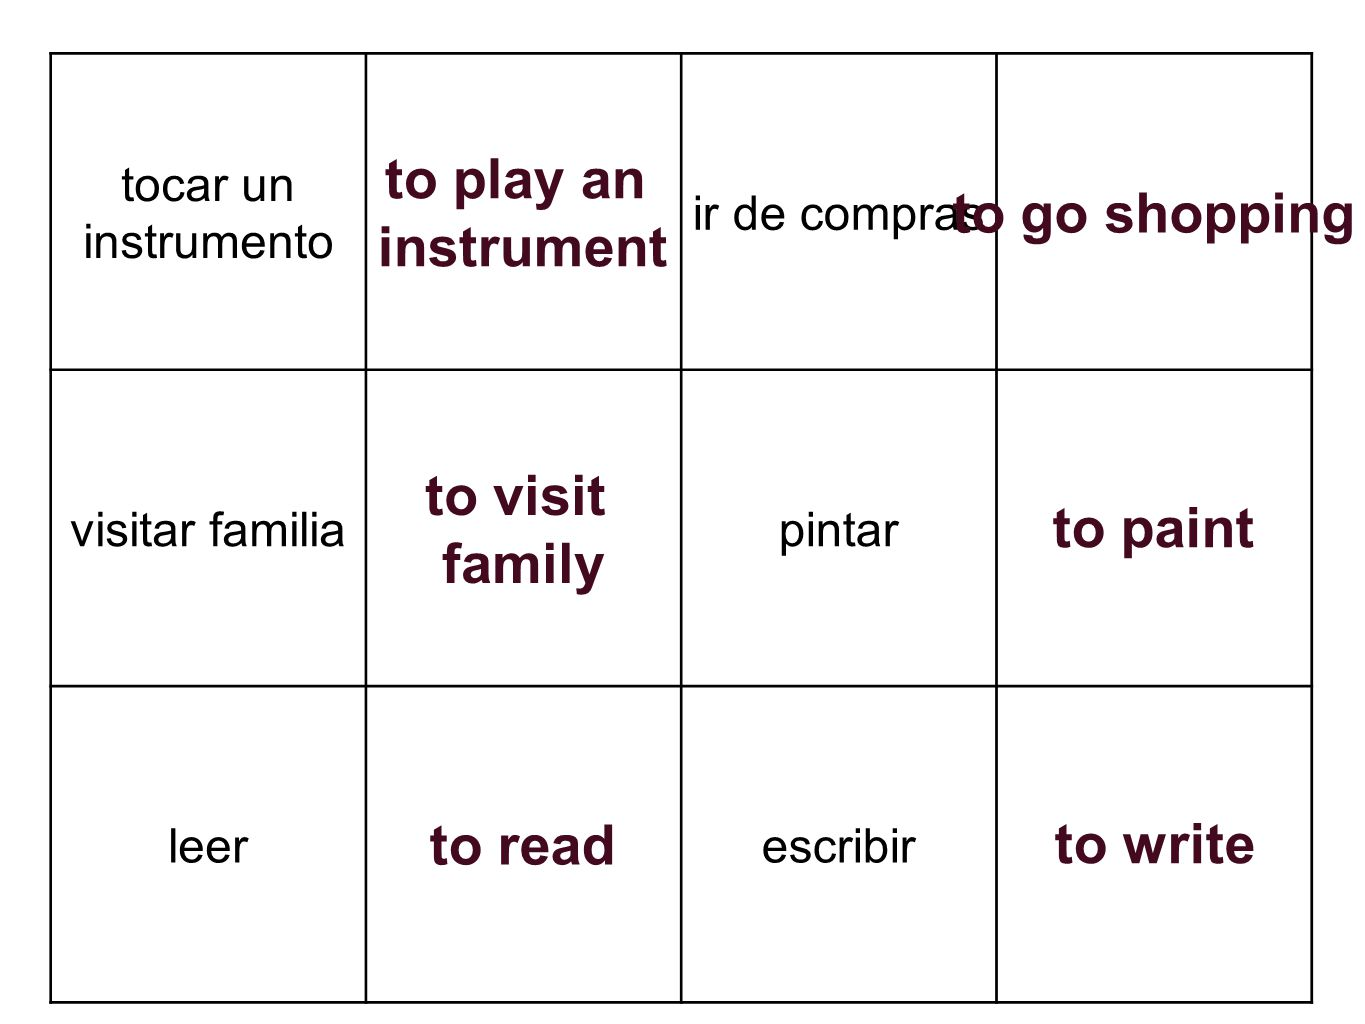 tocar un instrumento ir de compras visitar familiapintar leerescribir to play an instrument to visit family to read to go shopping to paint to write